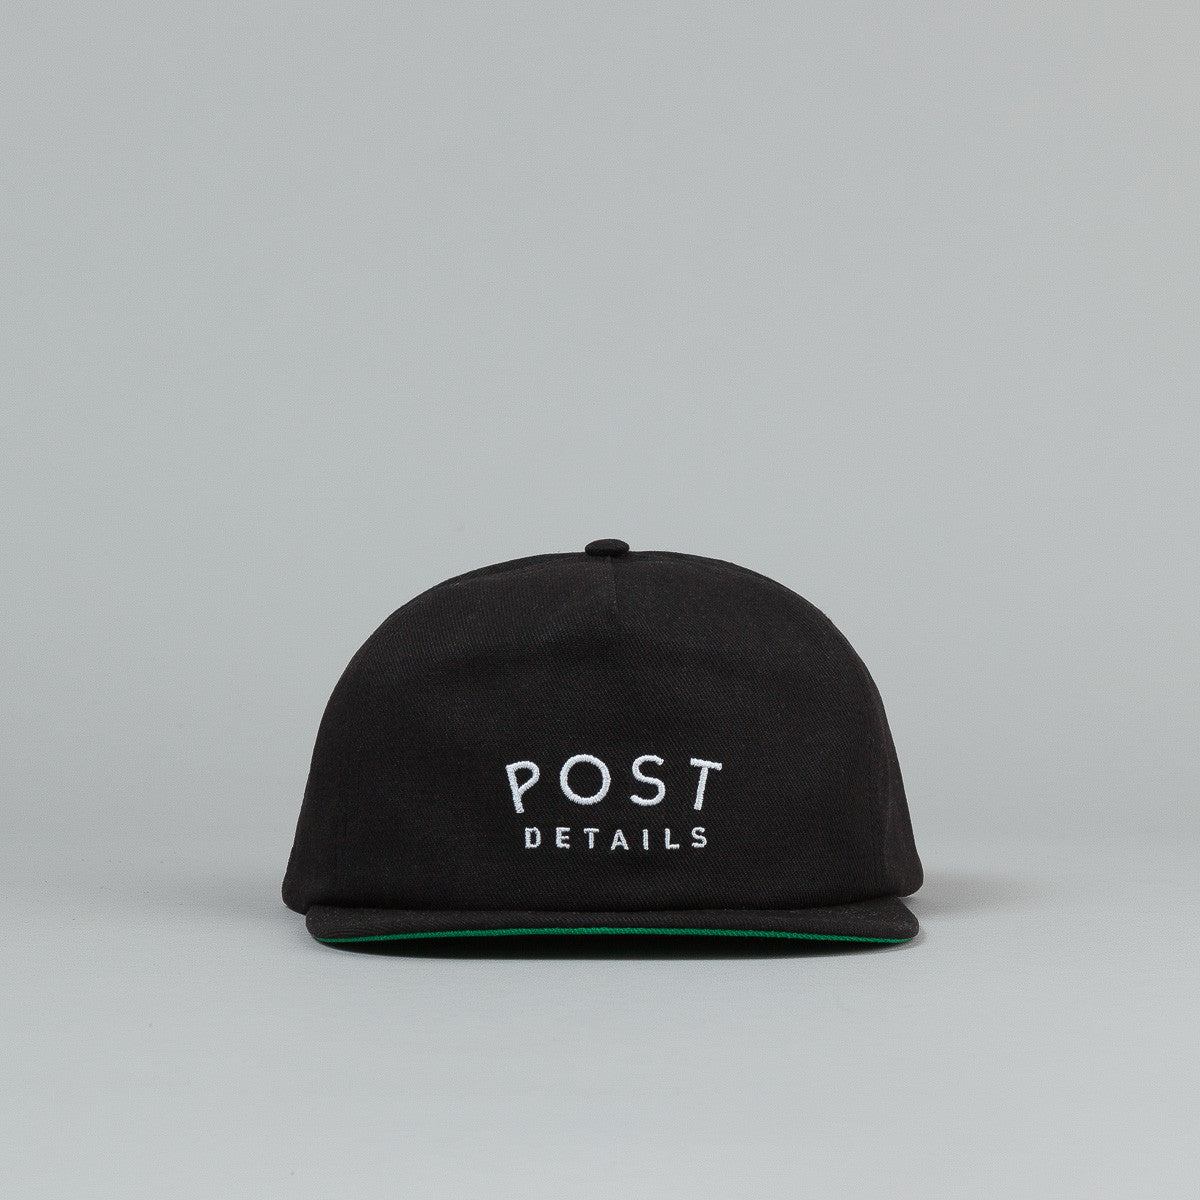 Post Details Standard Antifit Snapback Cap - Black